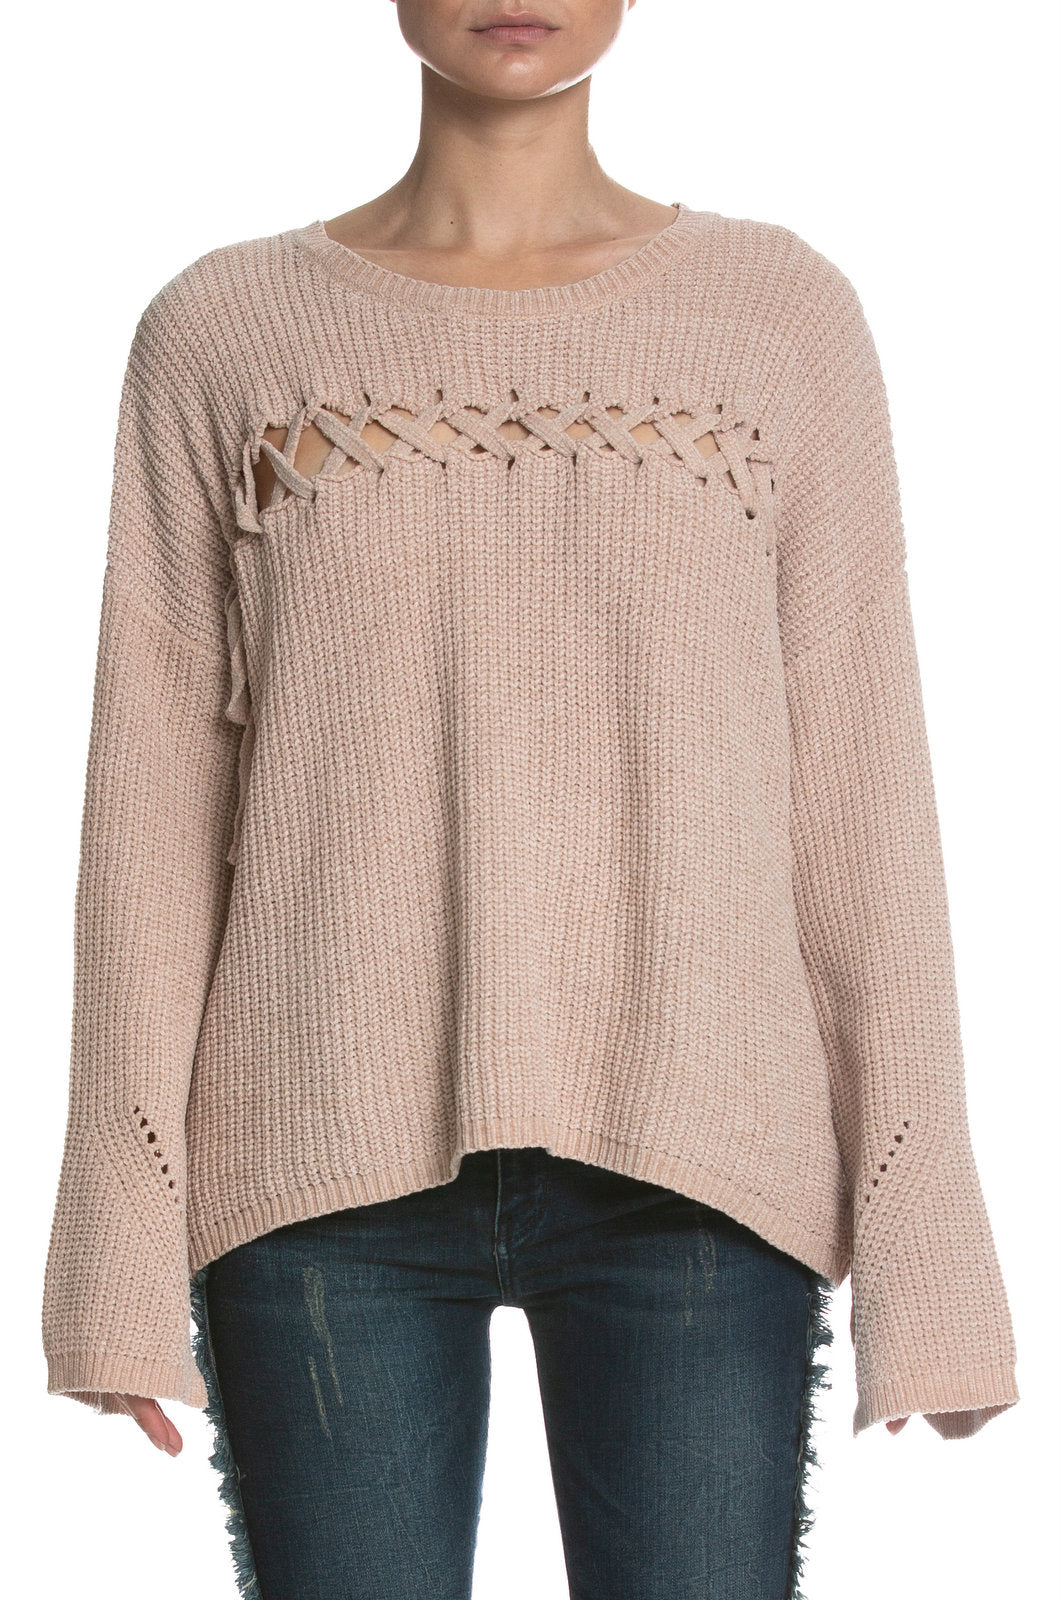 Terracotta Chenille Sweater with Lace Up Stitching